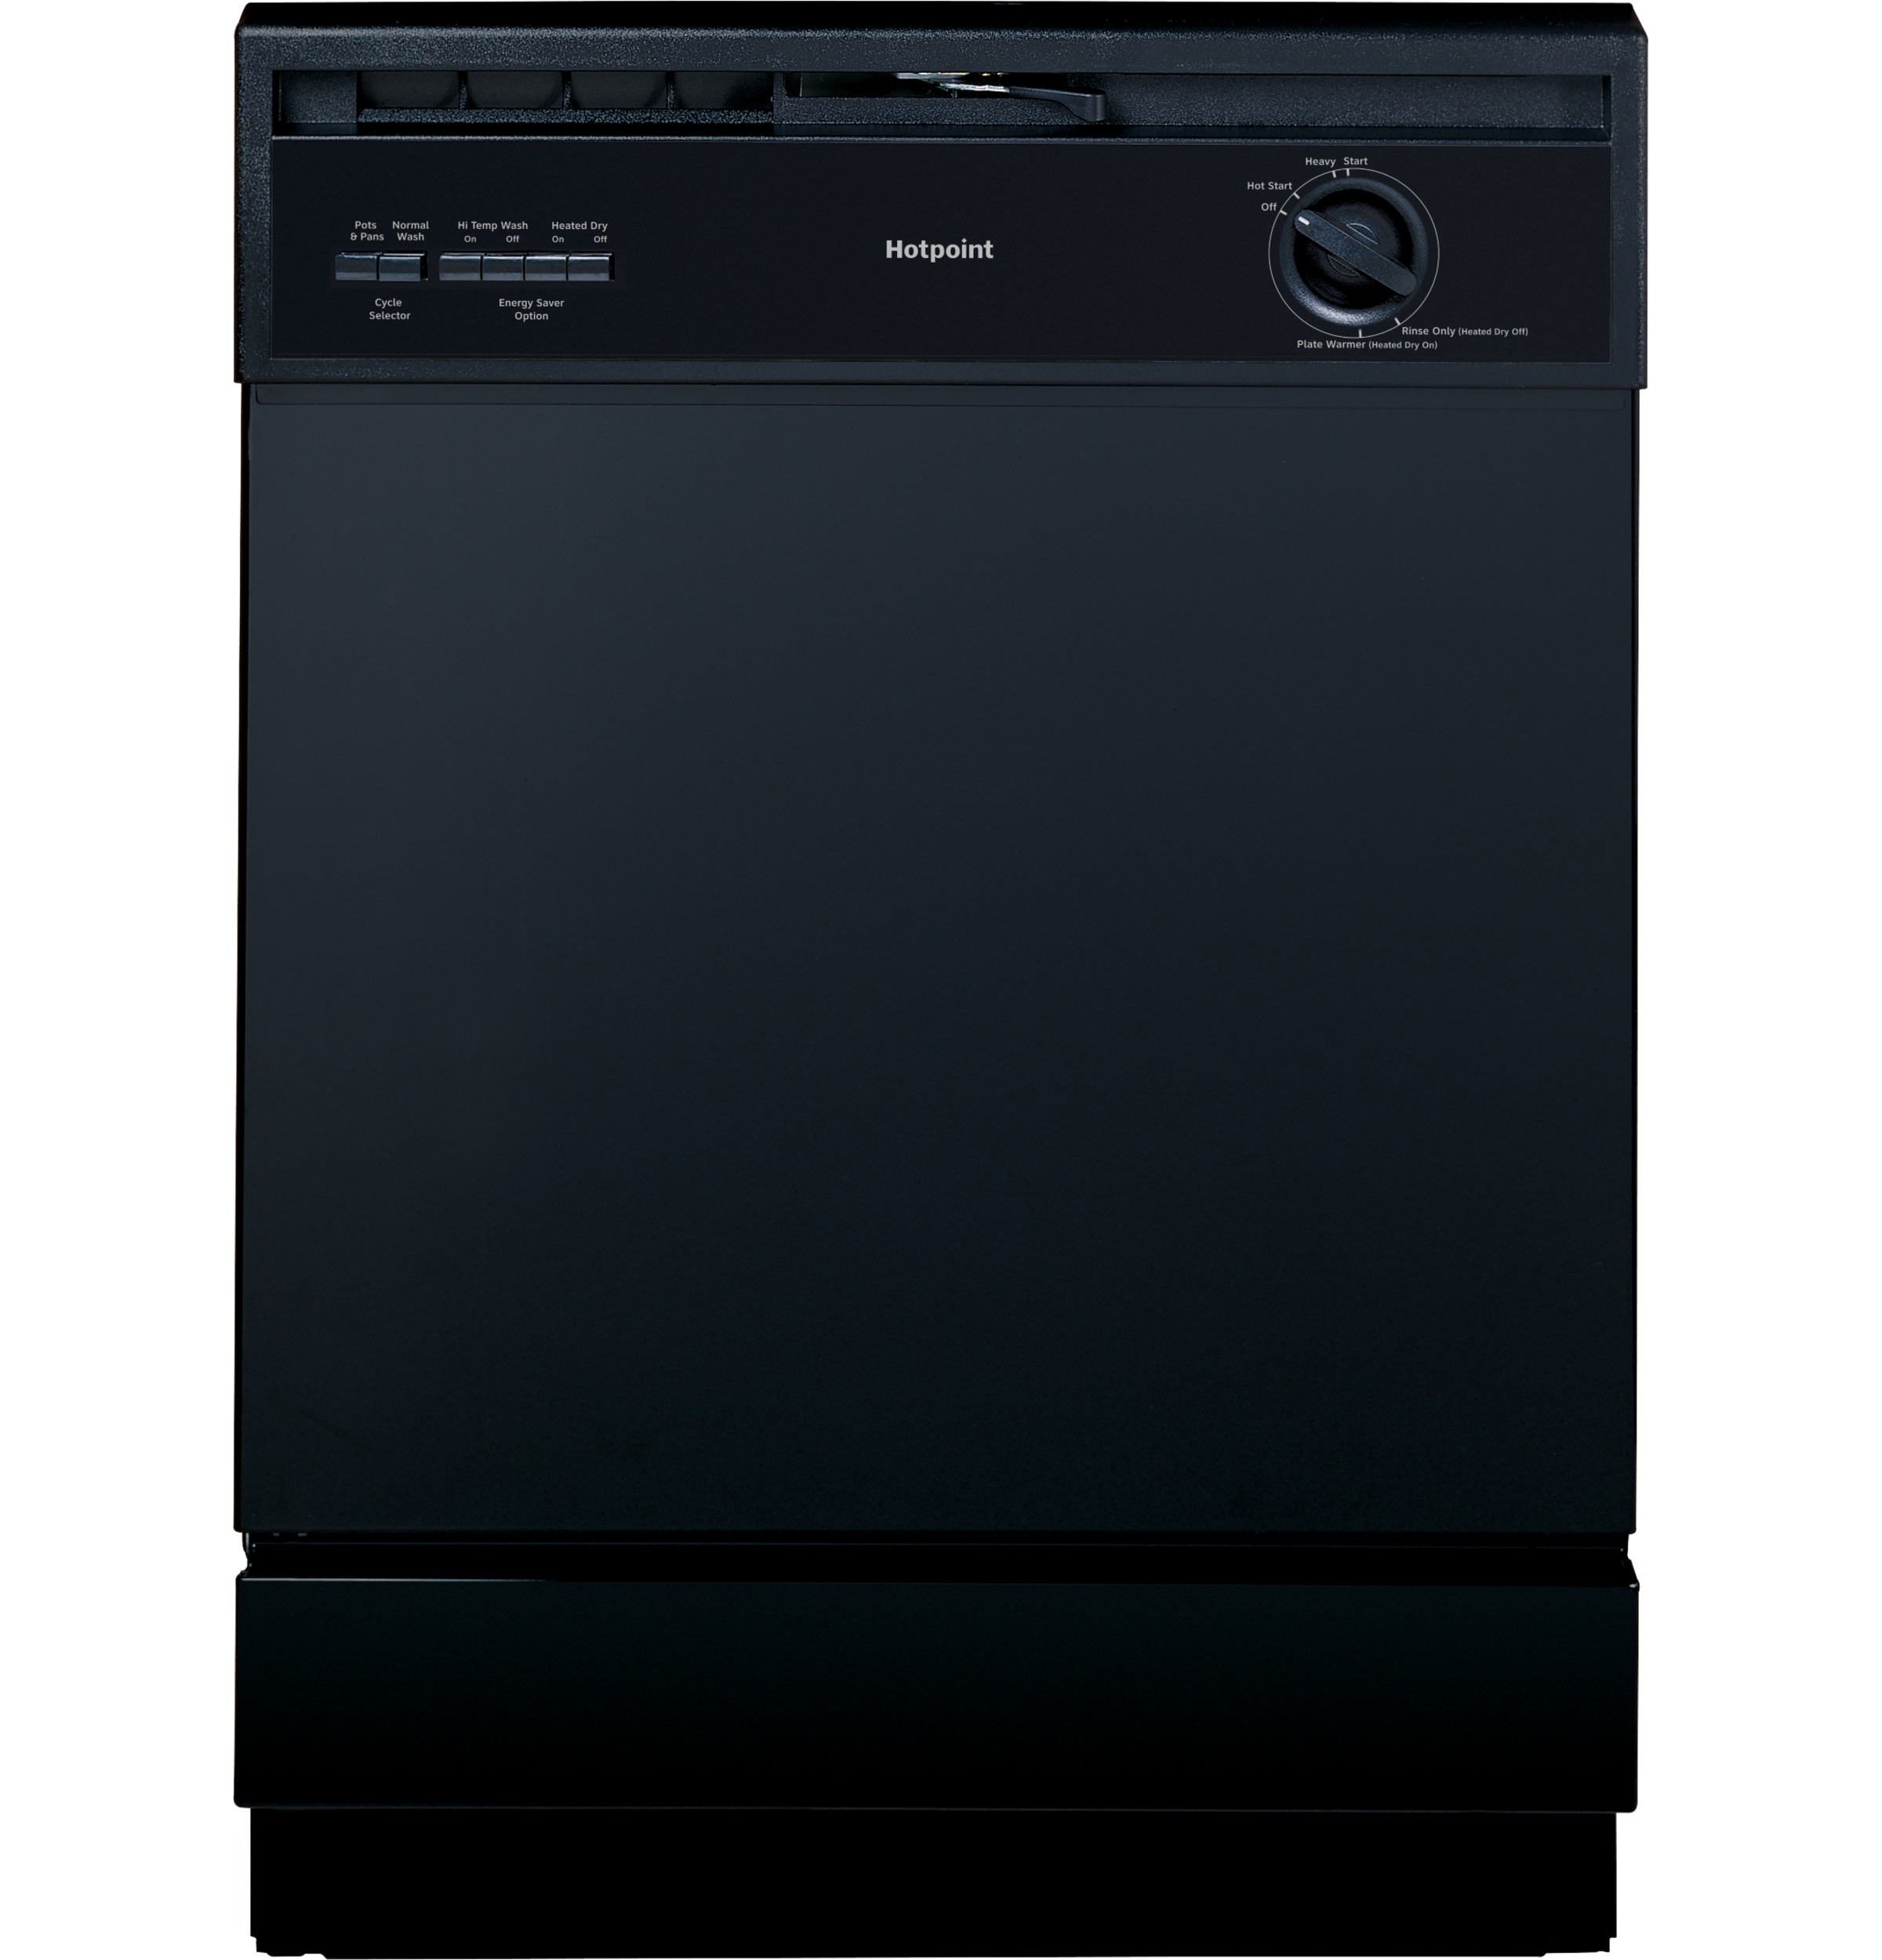 Model: HDA3600KBB | Hotpoint Hotpoint® Built-In Dishwasher